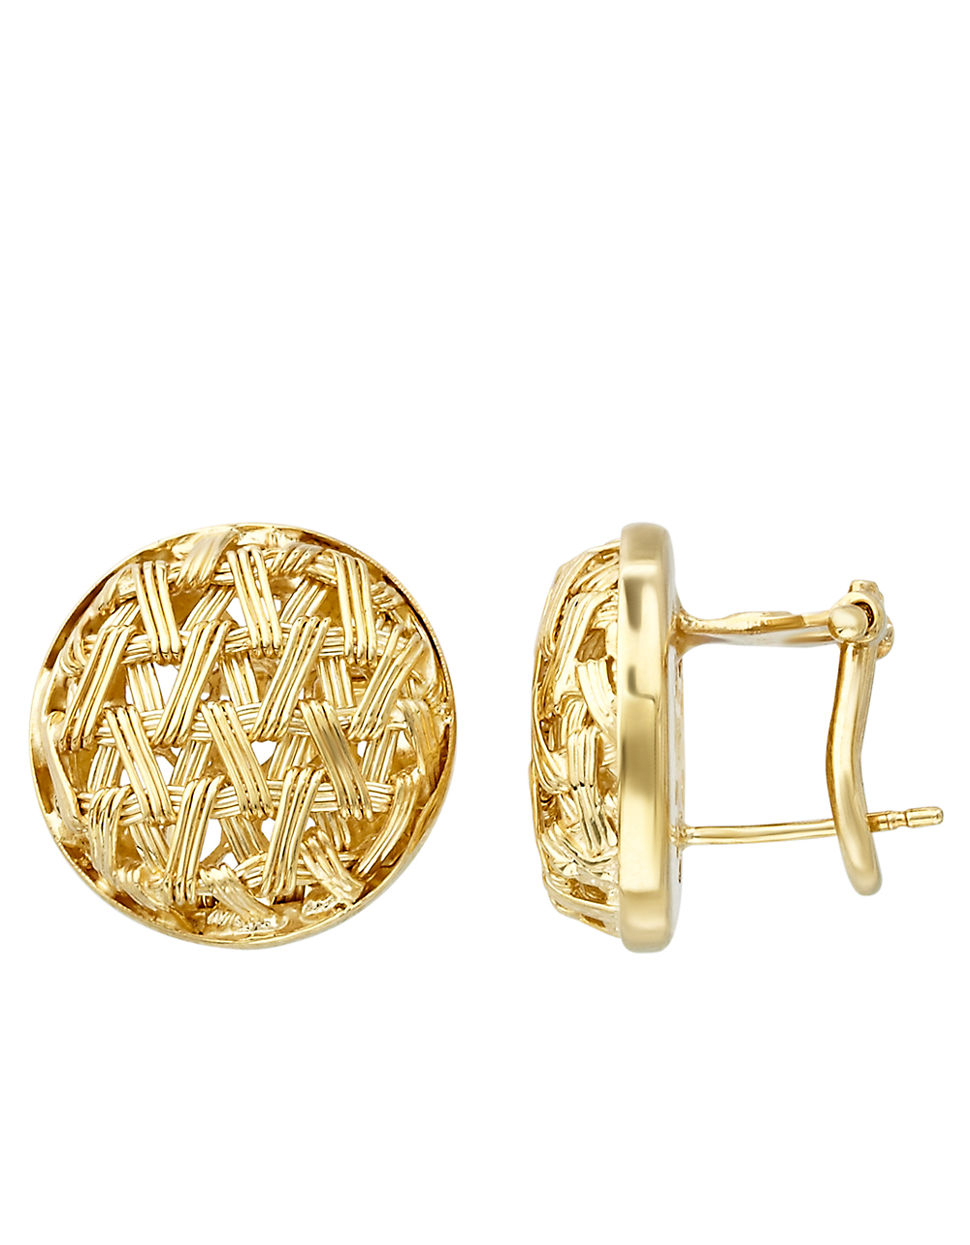 Gallery Previously Sold At Lord Taylor Lyst 14k Yellow Gold Basket Weave Earrings